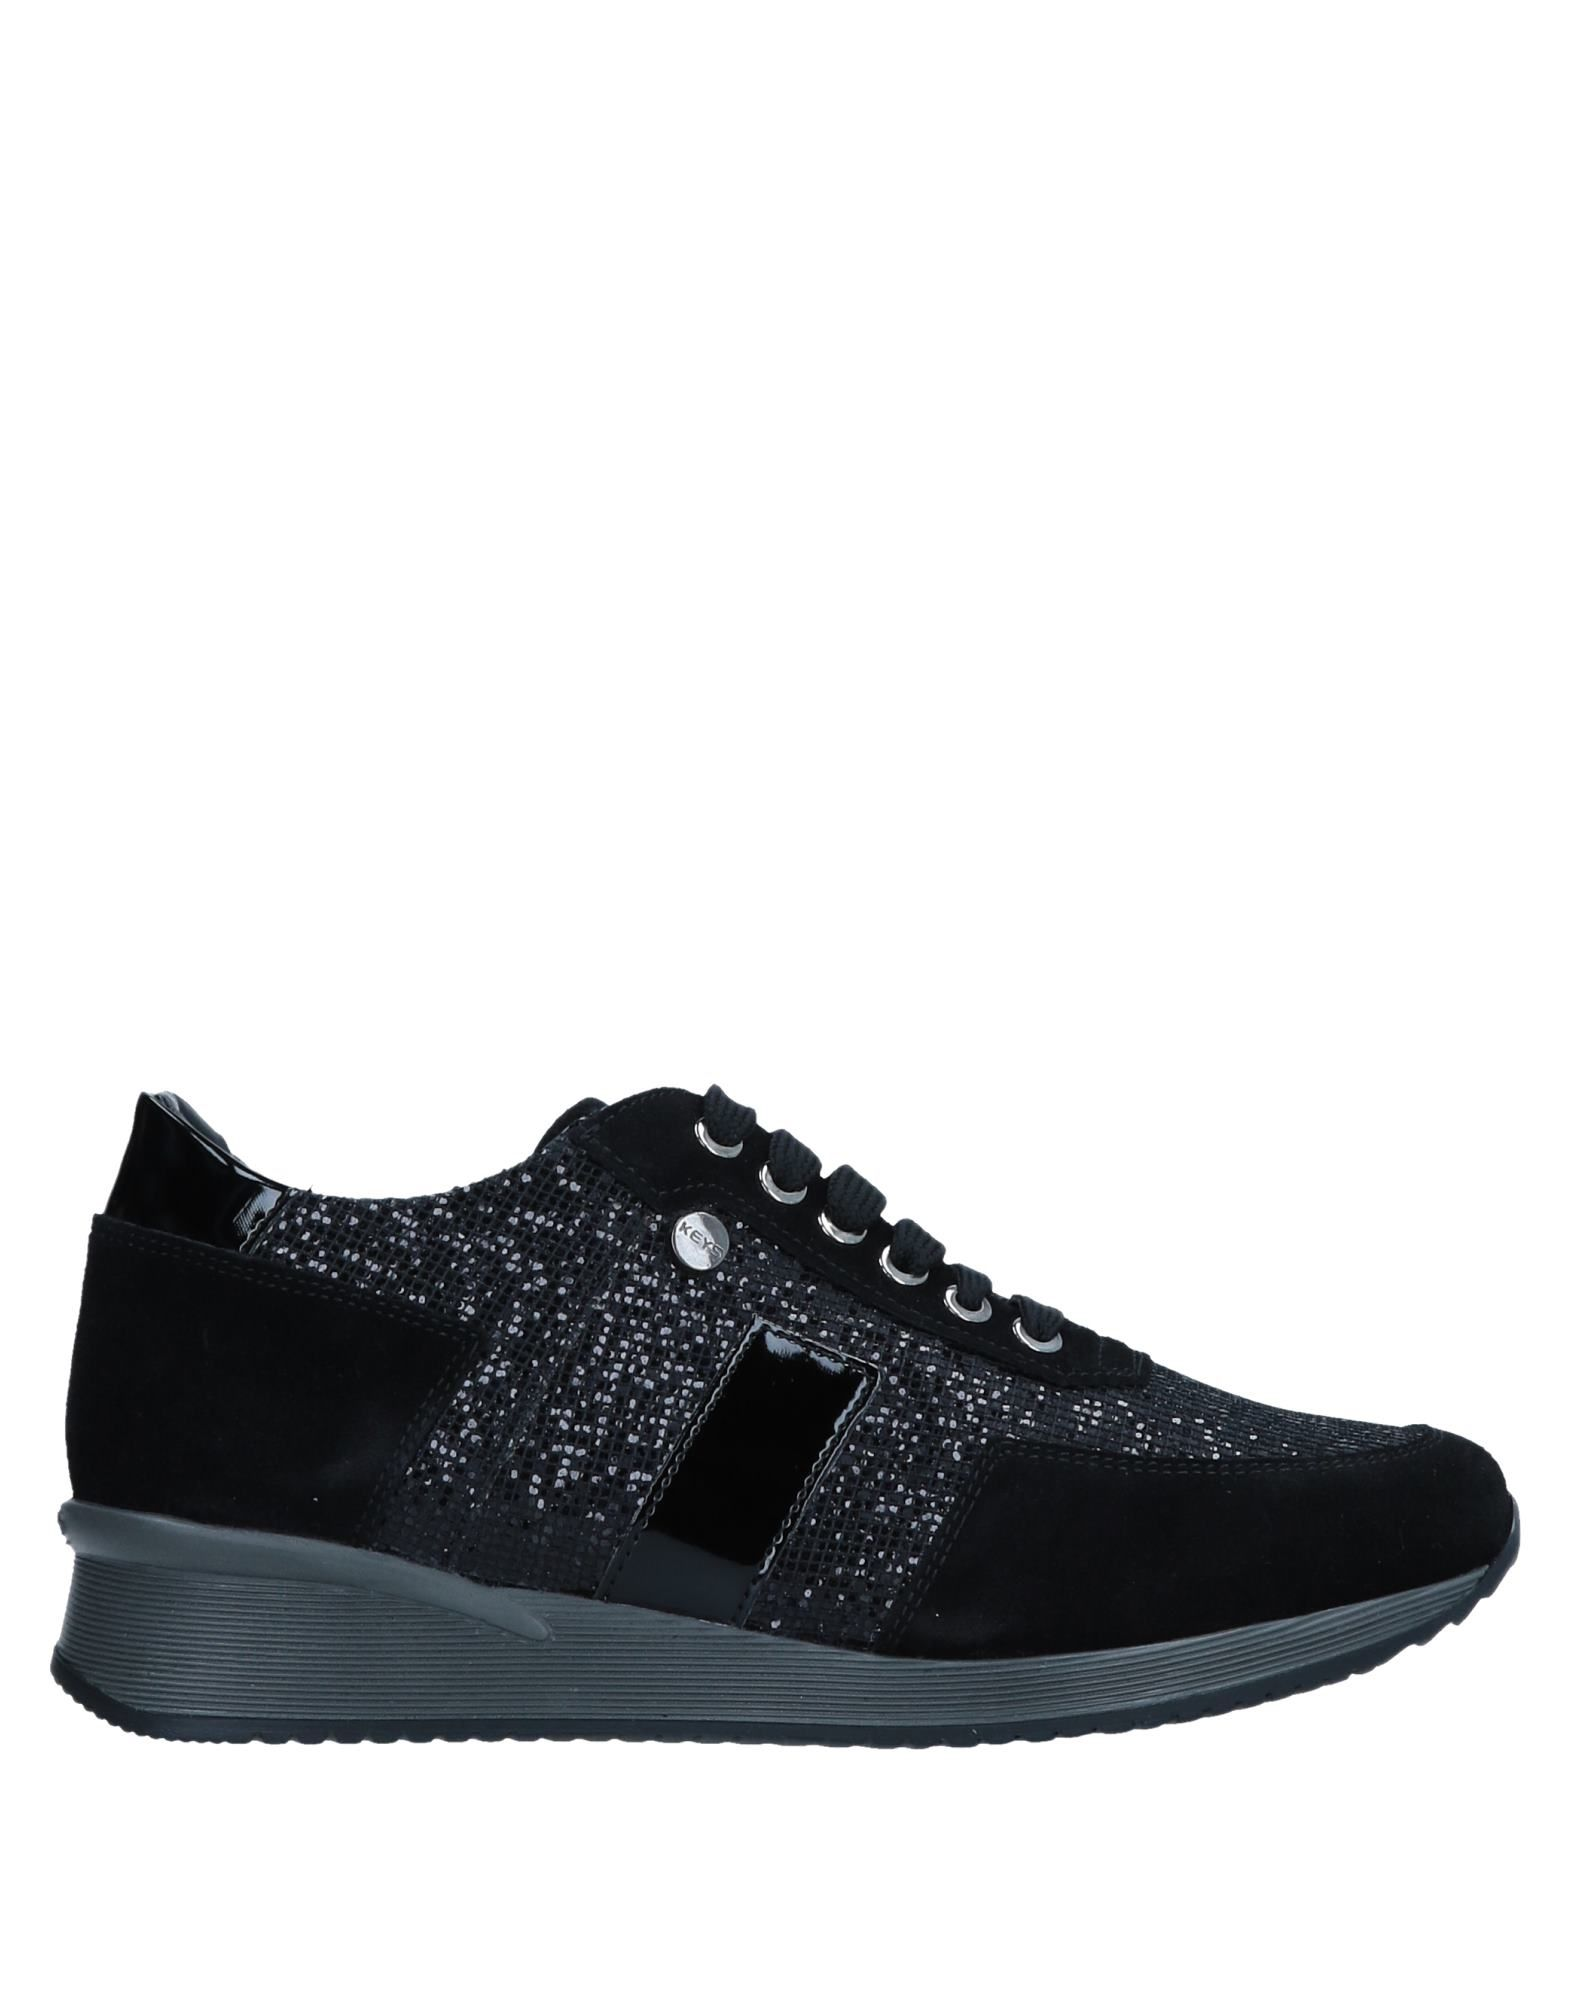 Keys Sneakers - Australia Women Keys Sneakers online on  Australia - - 11554269NJ e3d596